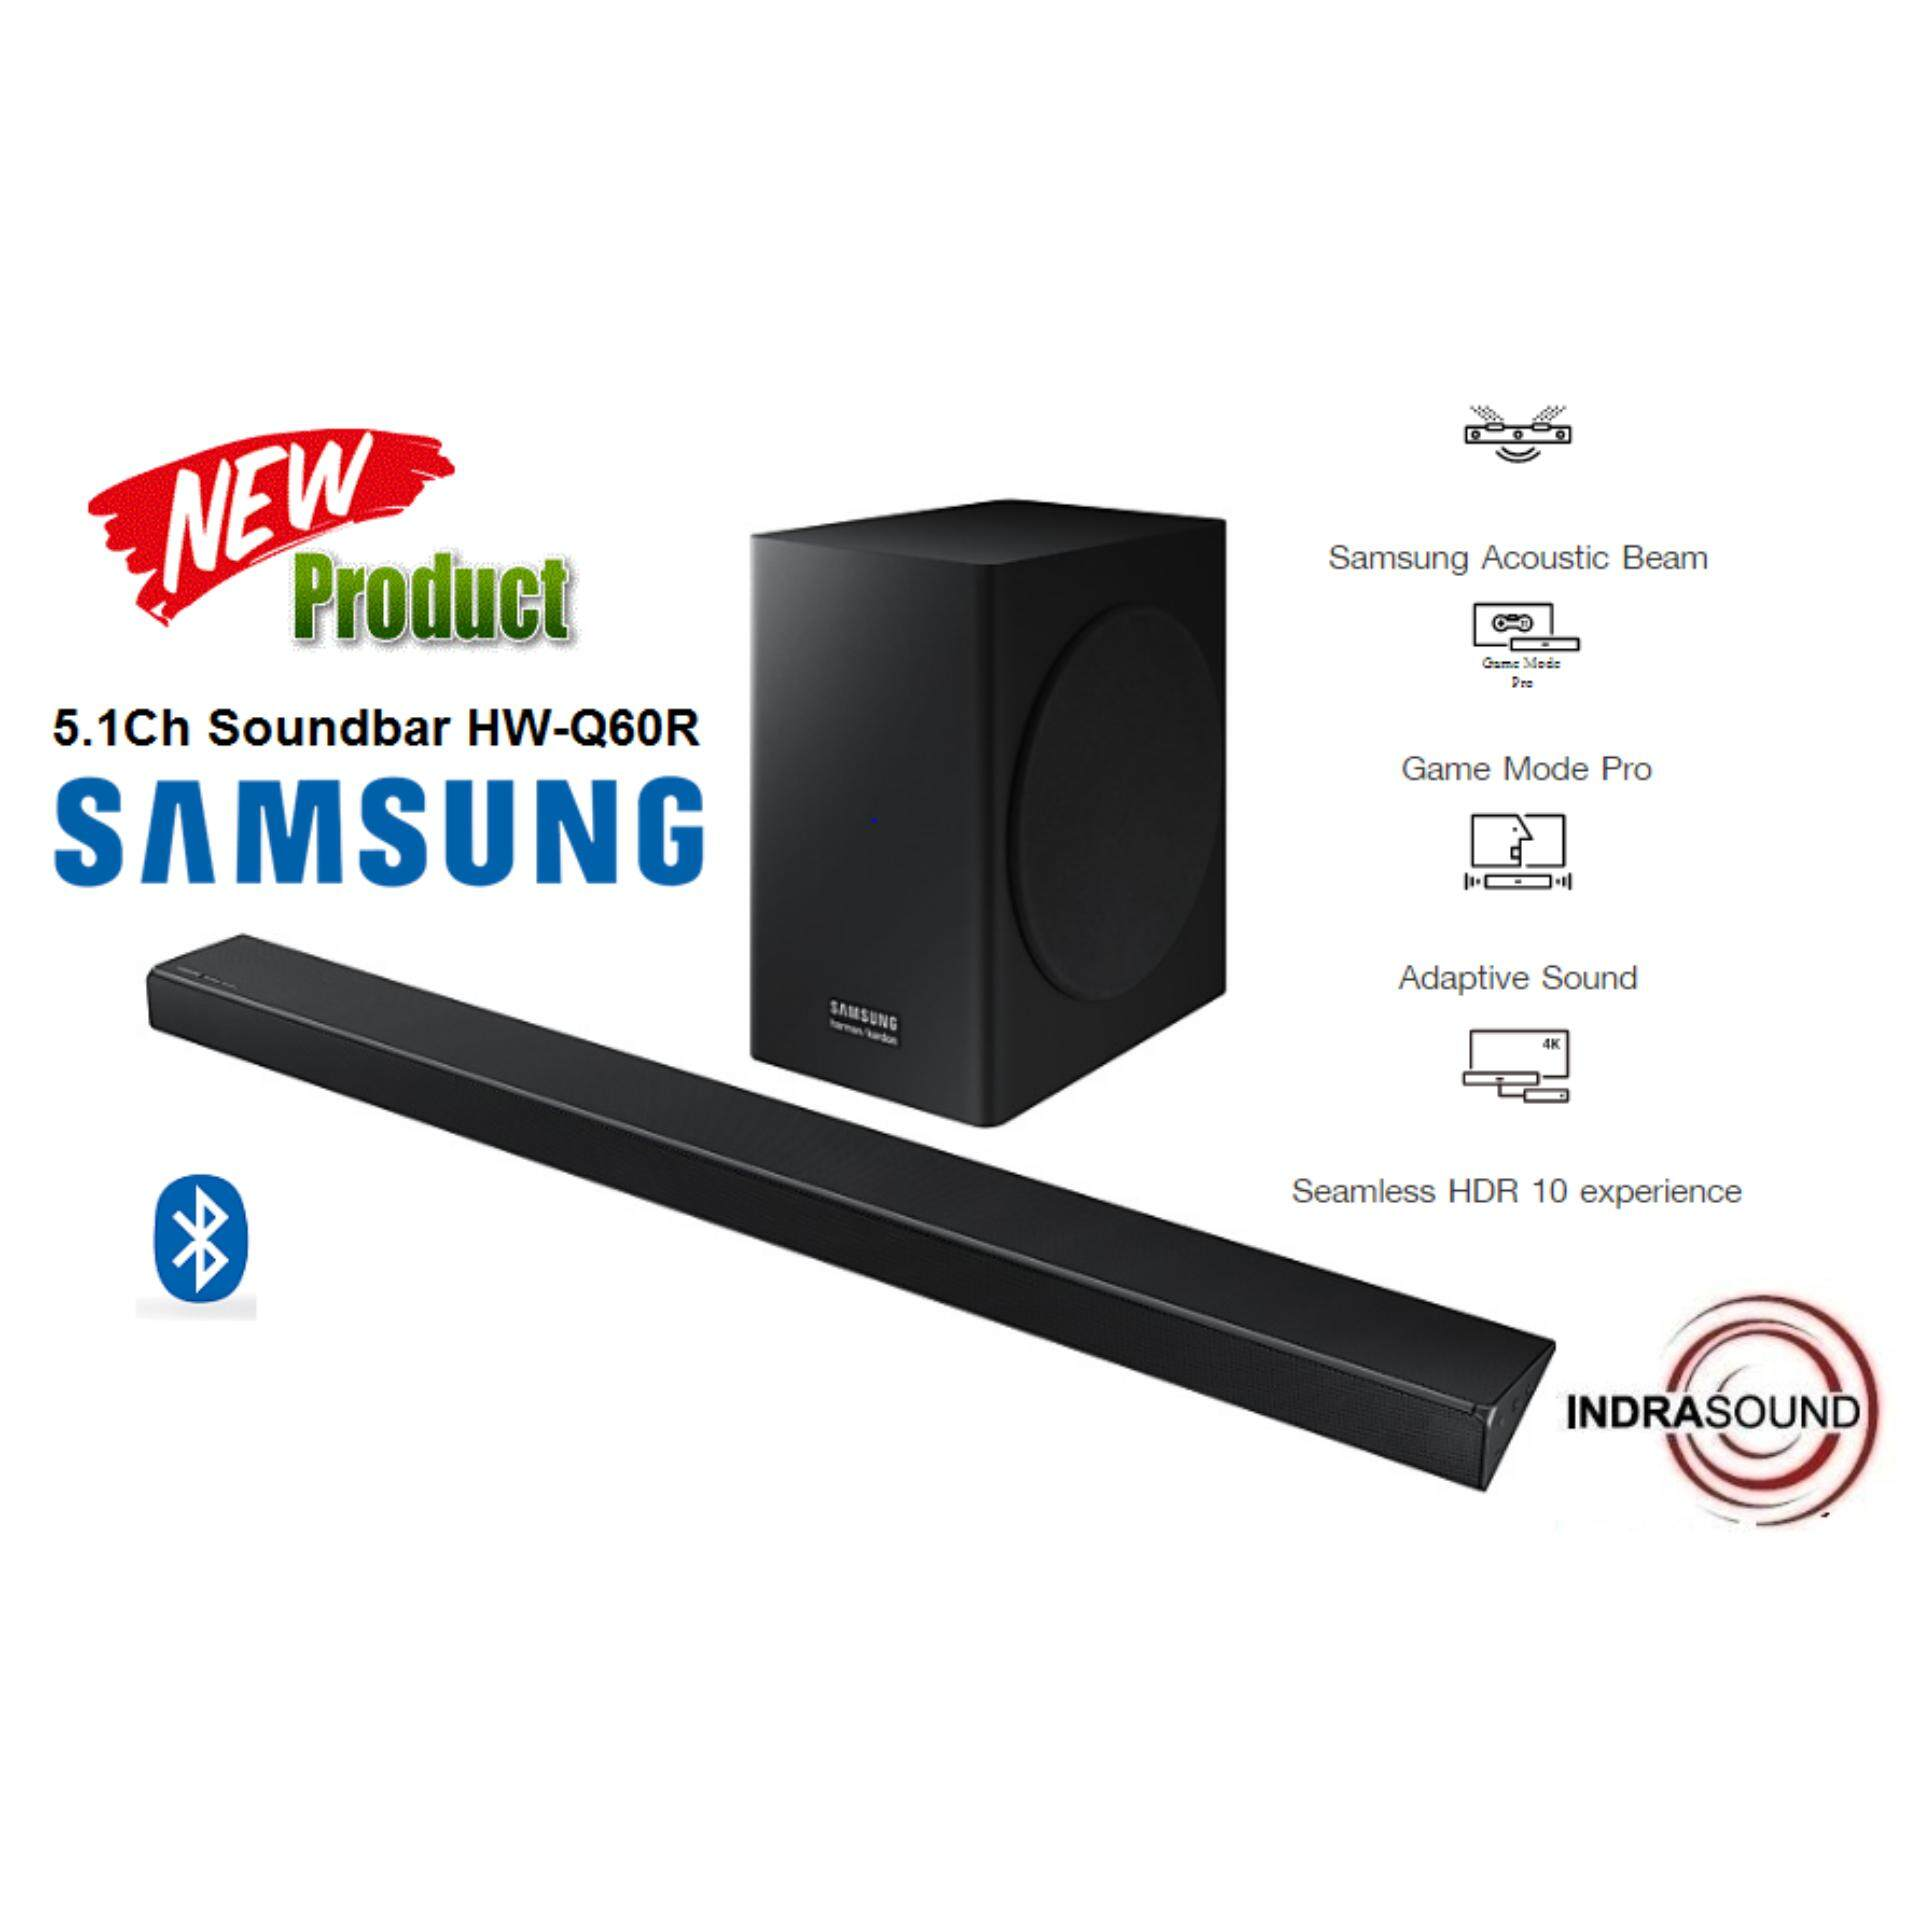 ยี่ห้อนี้ดีไหม  น่าน Samsung Soundbar รุ่น HW-Q60R/XT 5.1Ch 360W Harman Kardon Collaboration Subwoofer Wireless Active